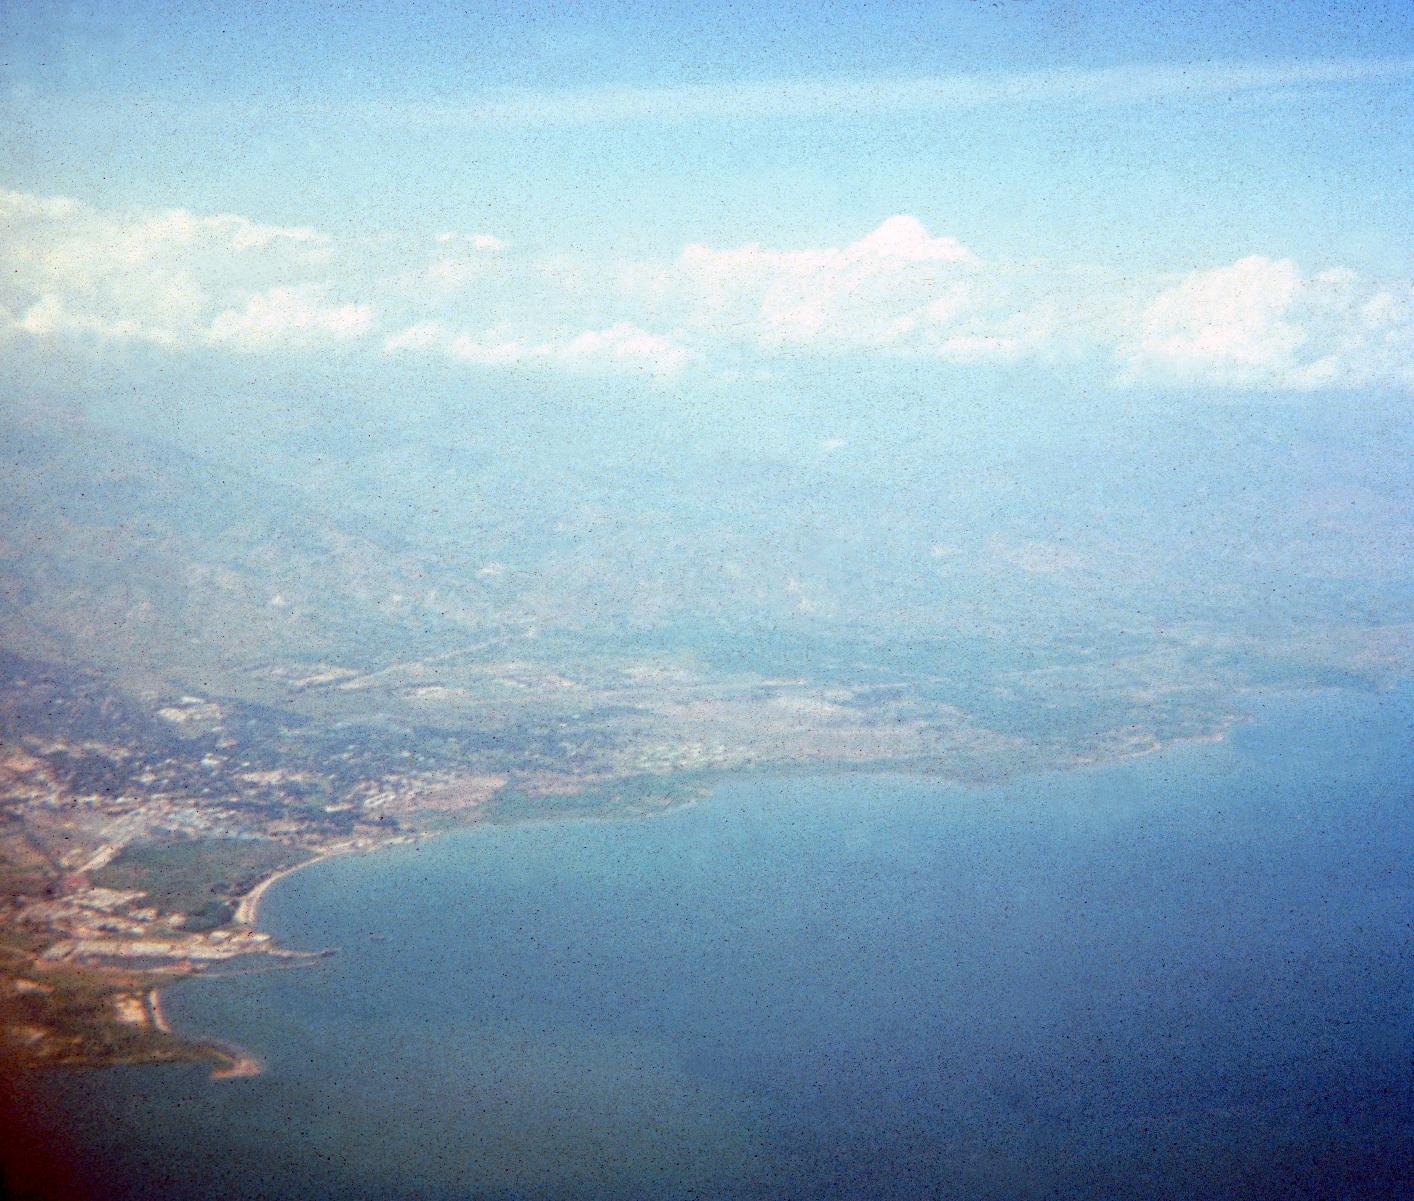 Aerial View of  the Capital, Bujumbura, on Lake Tanganyika